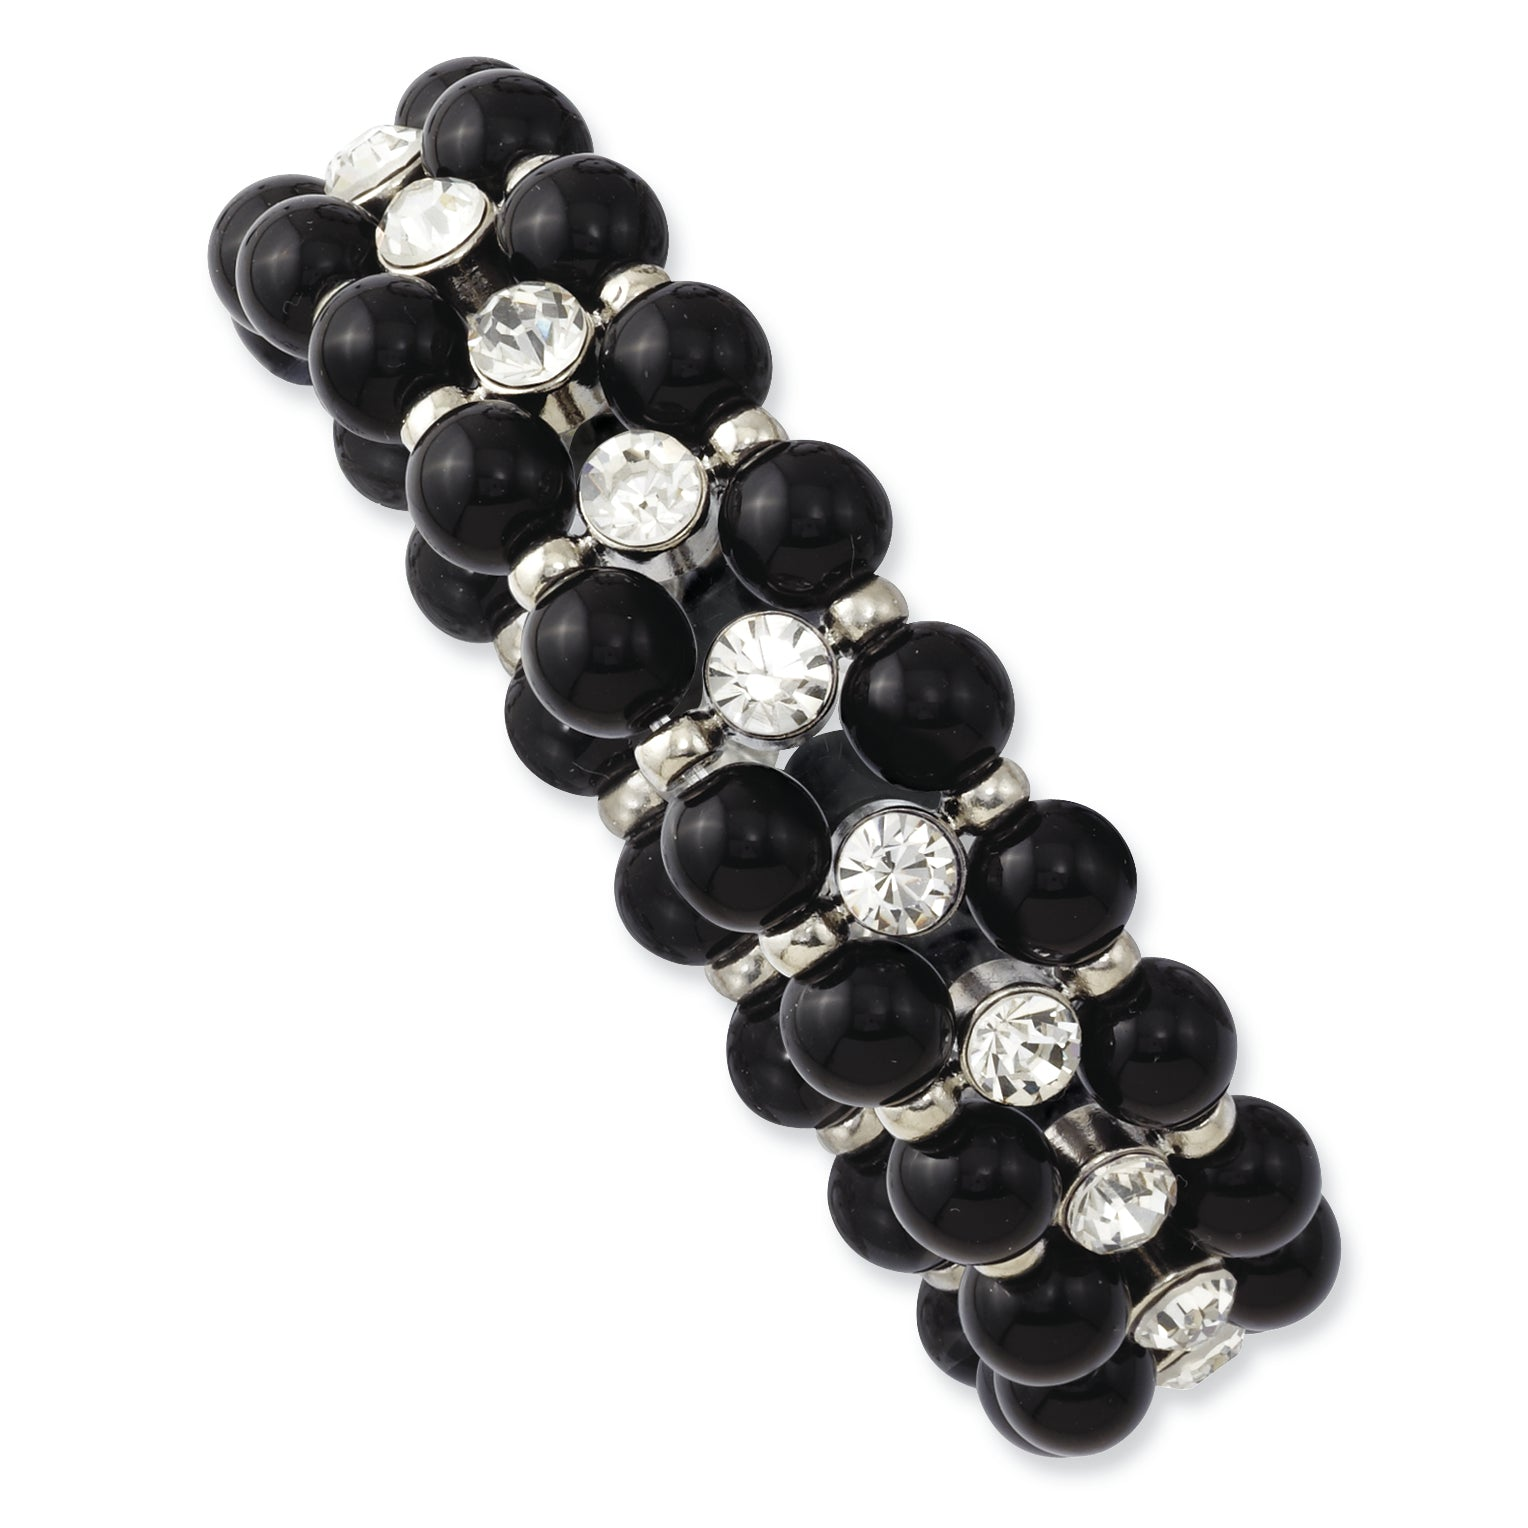 Silver-tone Black Beads & Clear Glass Stones Stretch Bracelet BF1149 - shirin-diamonds